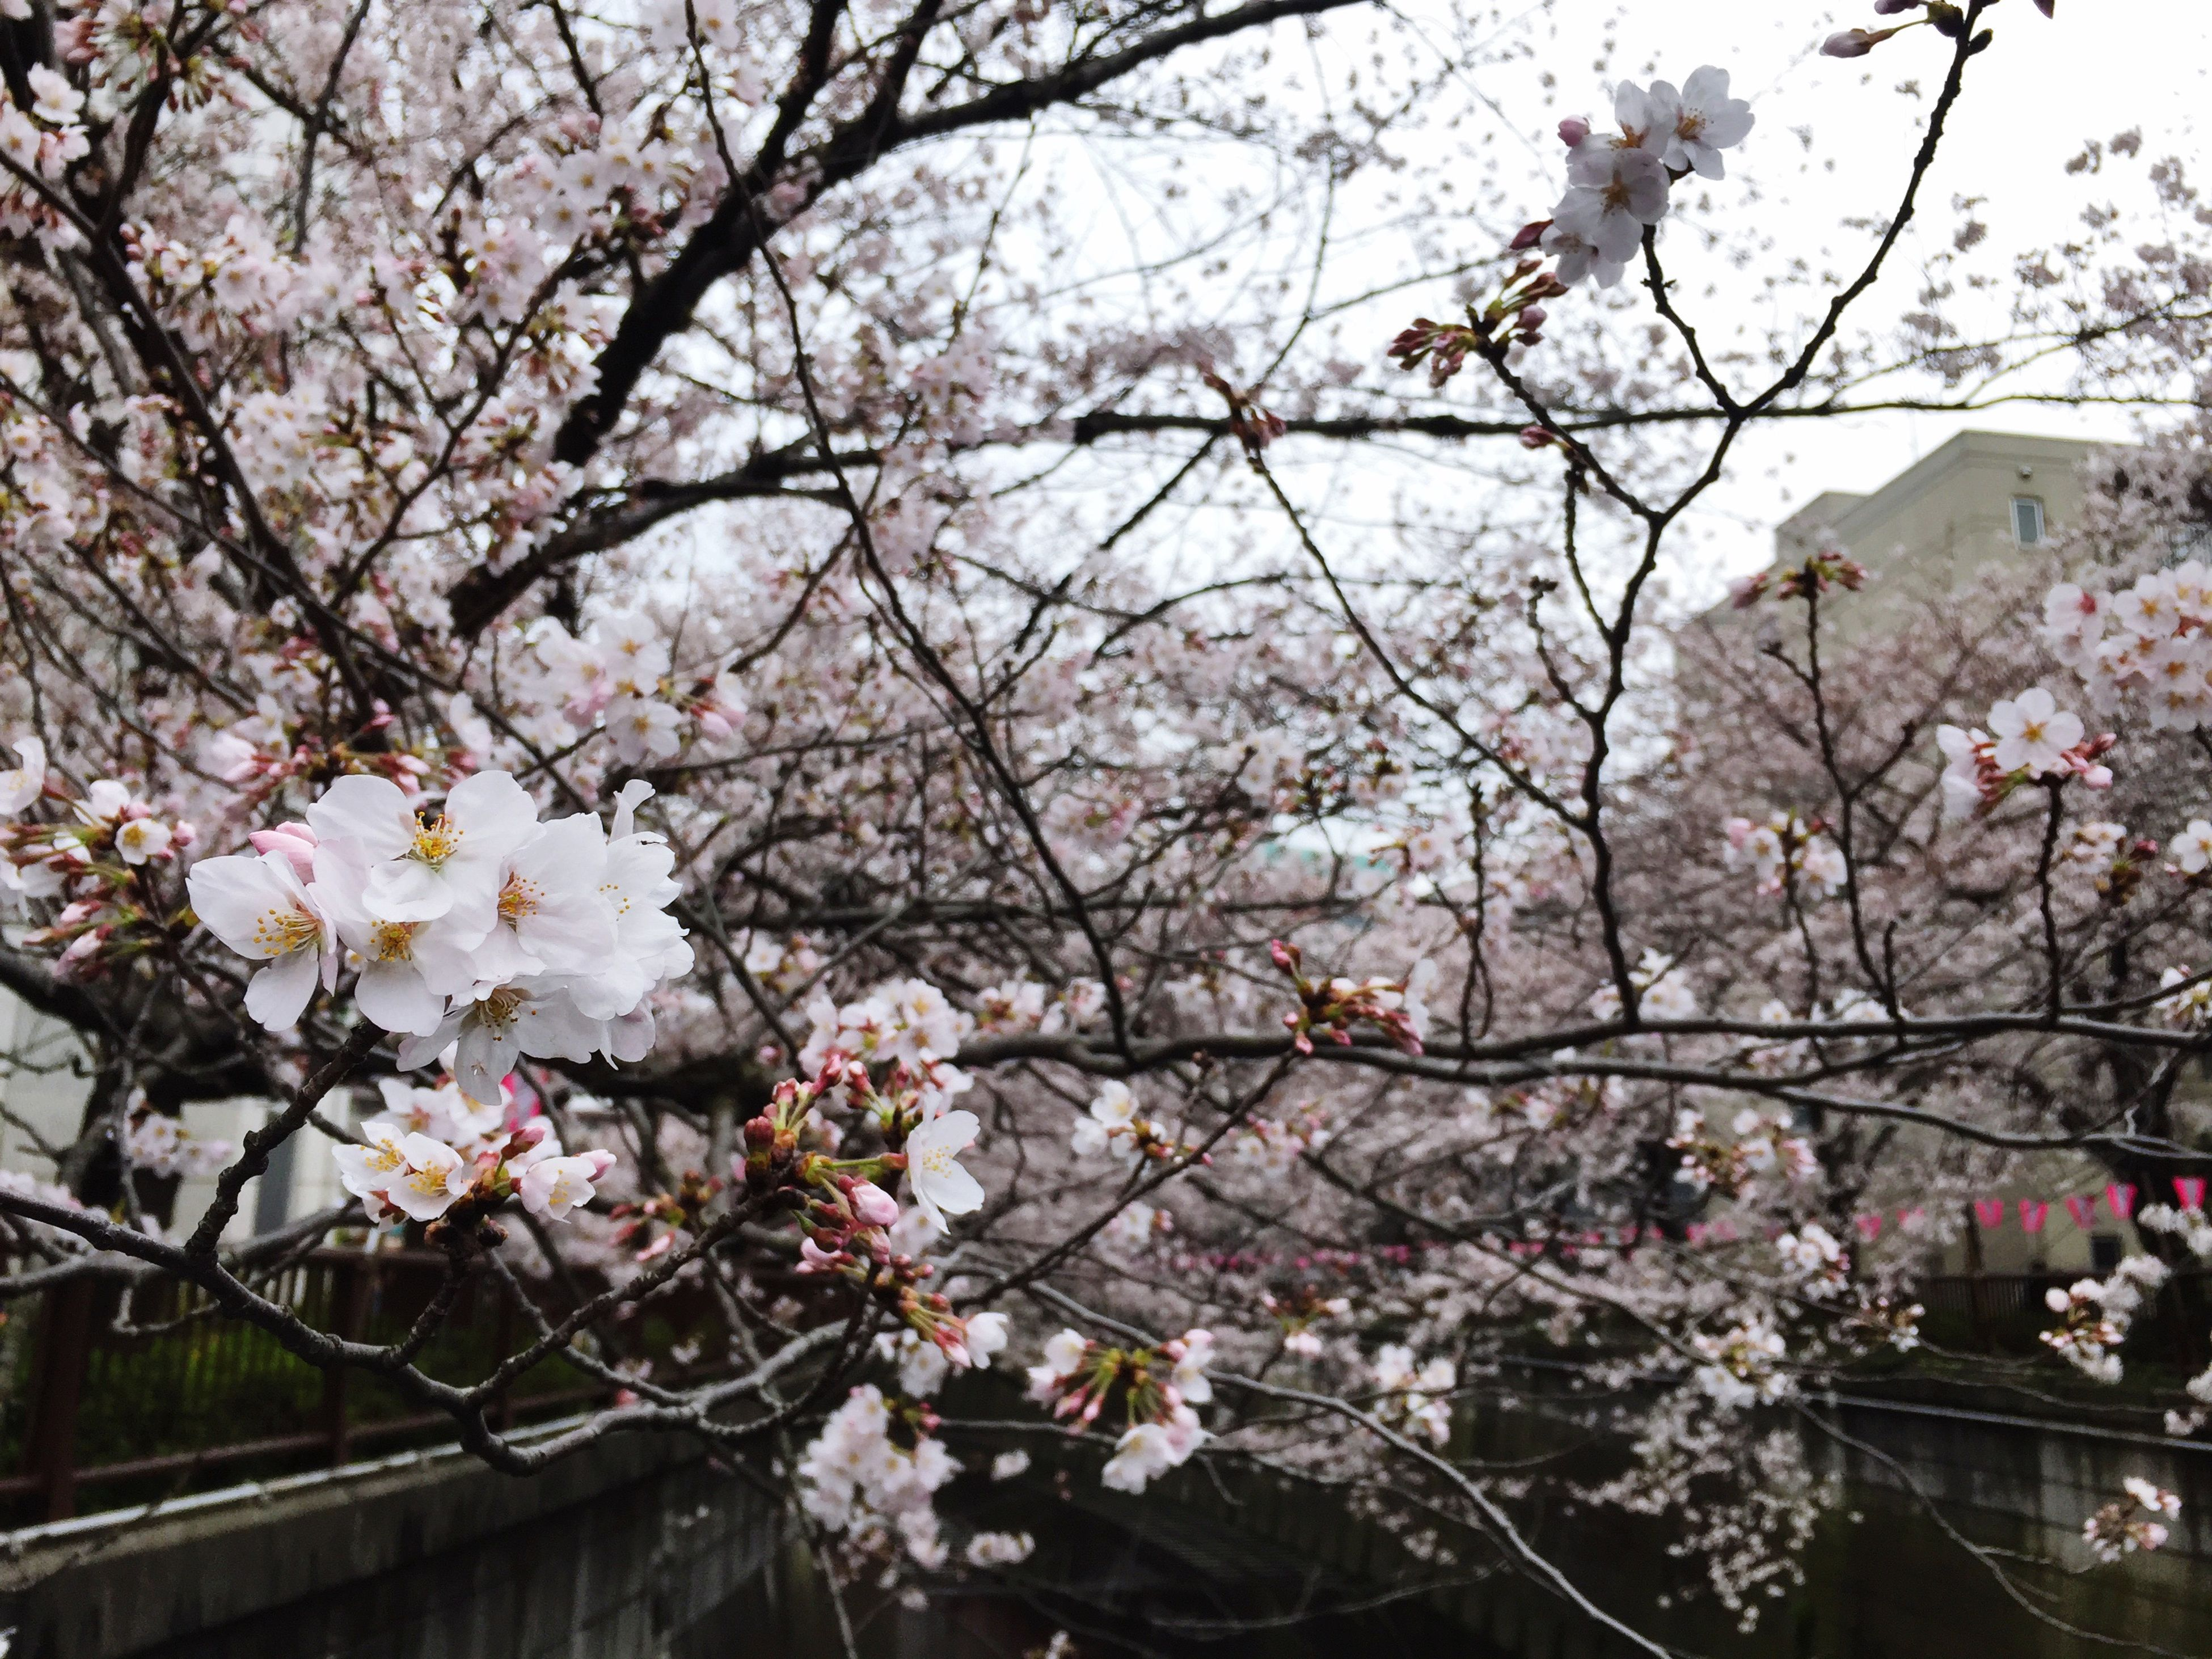 flower, tree, branch, cherry blossom, freshness, cherry tree, blossom, fragility, growth, beauty in nature, low angle view, fruit tree, nature, springtime, in bloom, pink color, orchard, blooming, apple blossom, petal